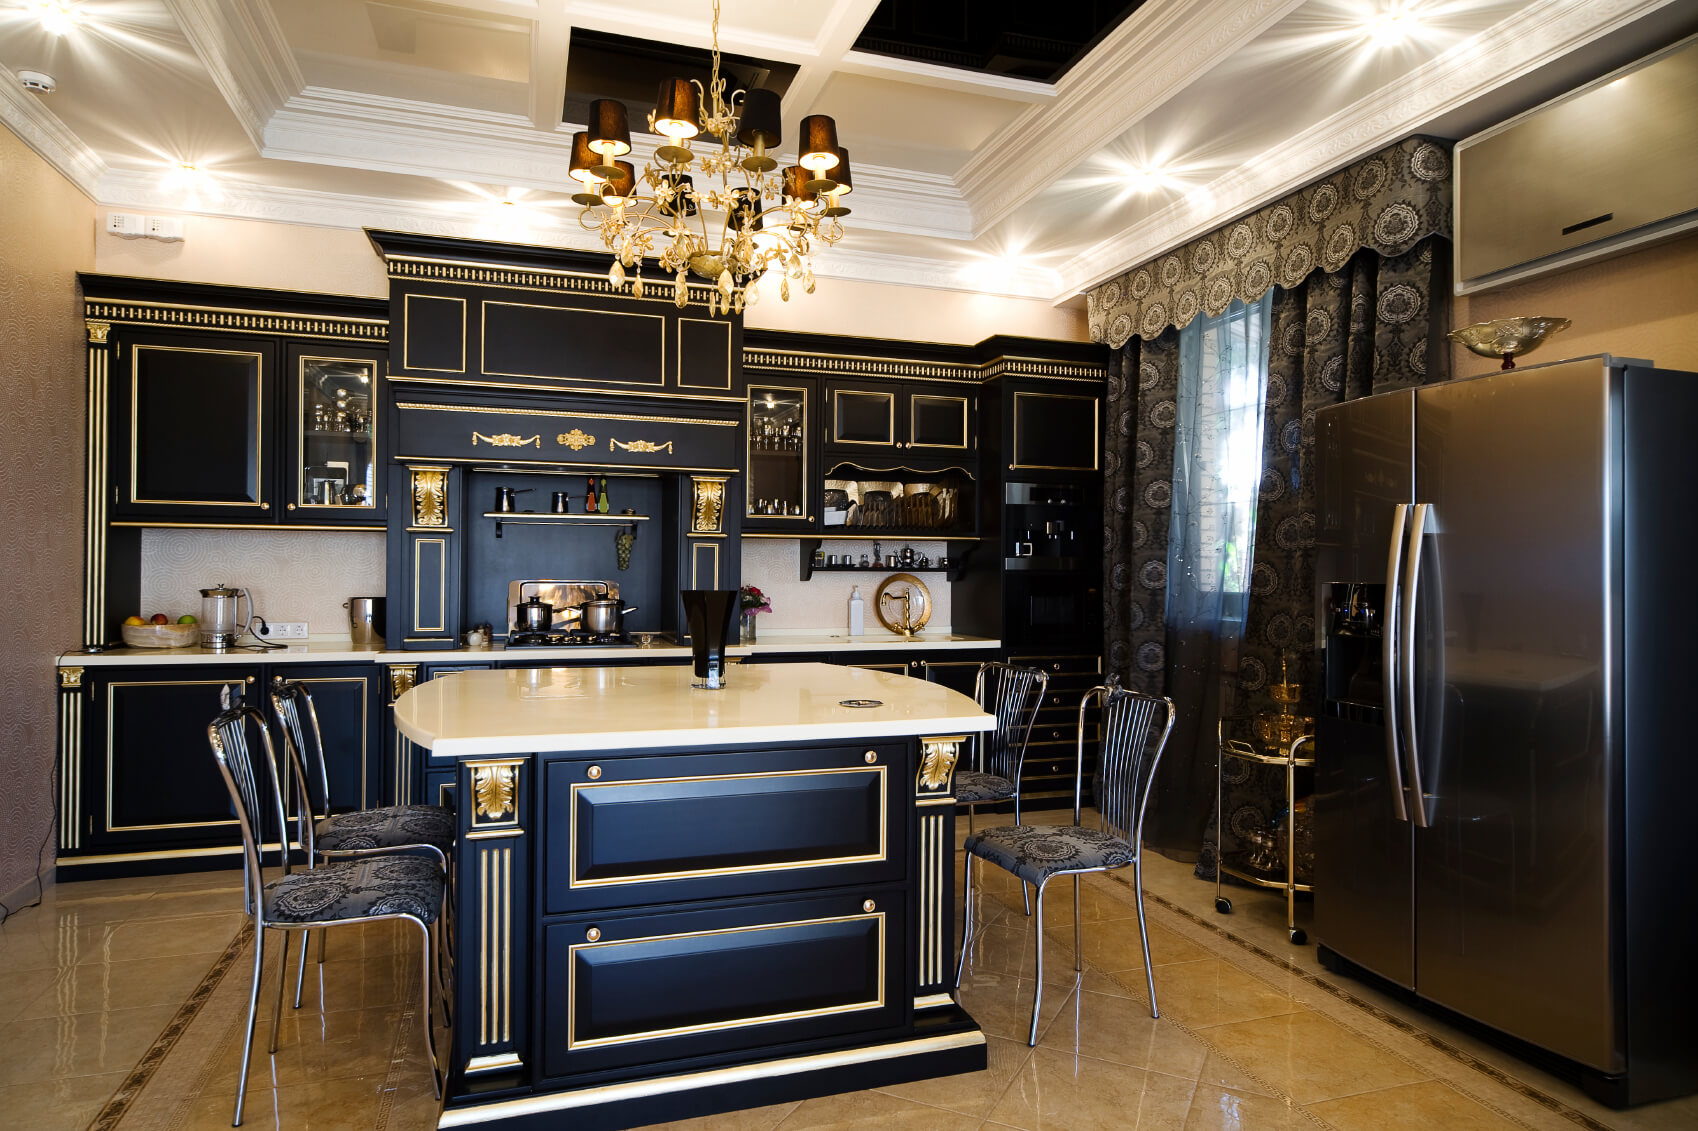 First Wood Or Black Kitchen Cabinets Ultra Kitchen Features Gilded Black Wood Cabinetry Over Beigemarble Marble Counters Kitchens kitchen Ceiling Cabinets Over Island